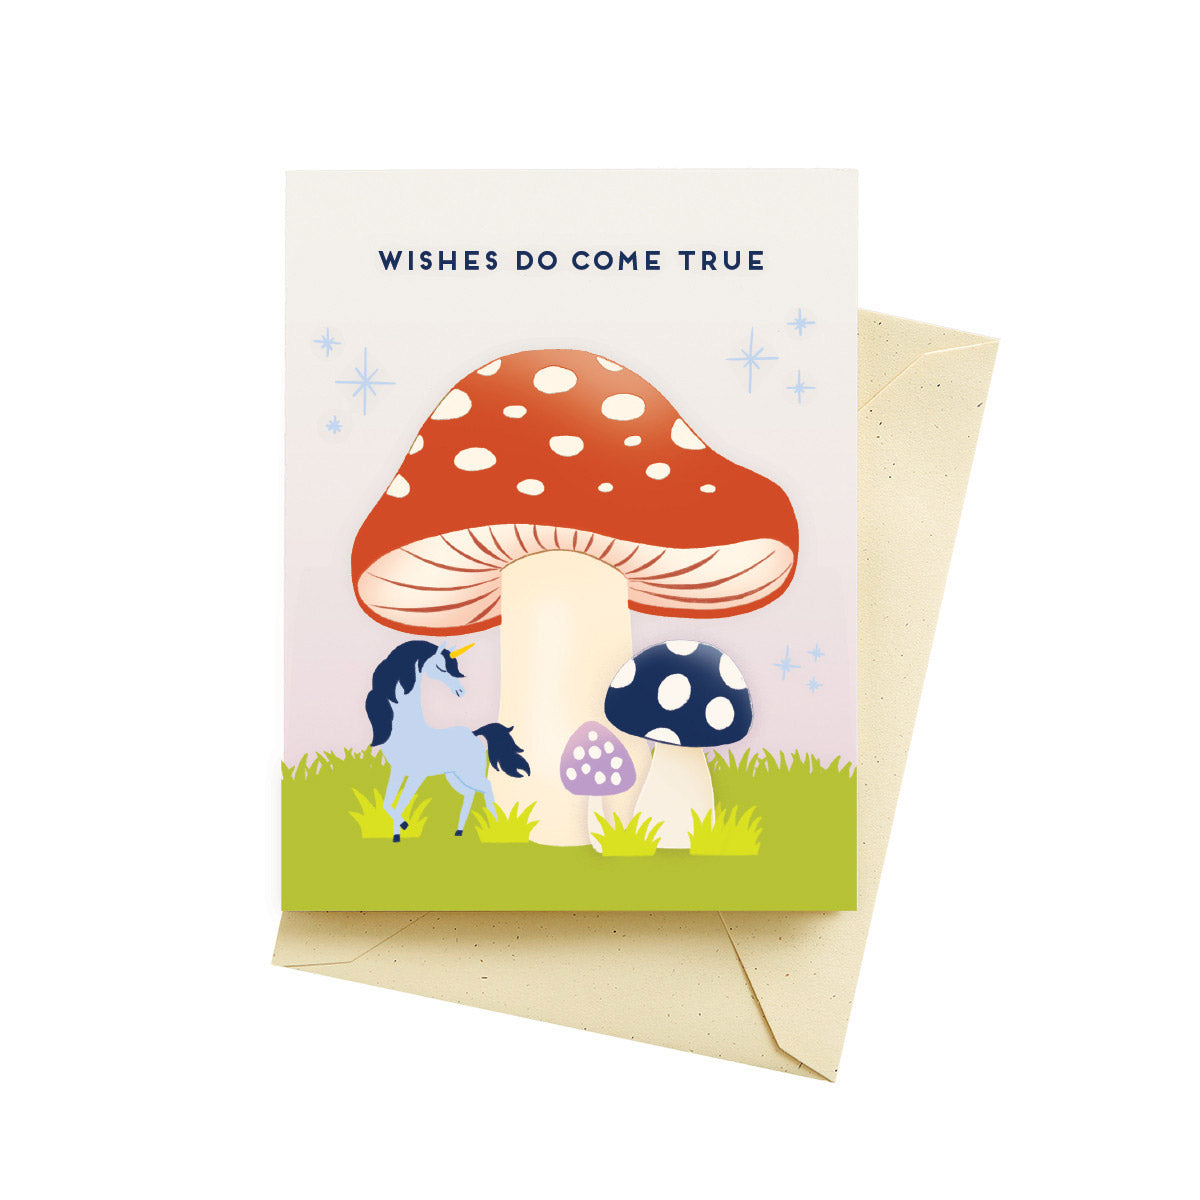 Mushroom Wishes Birthday Card by Seltzer from Leanna Lin's Wonderland